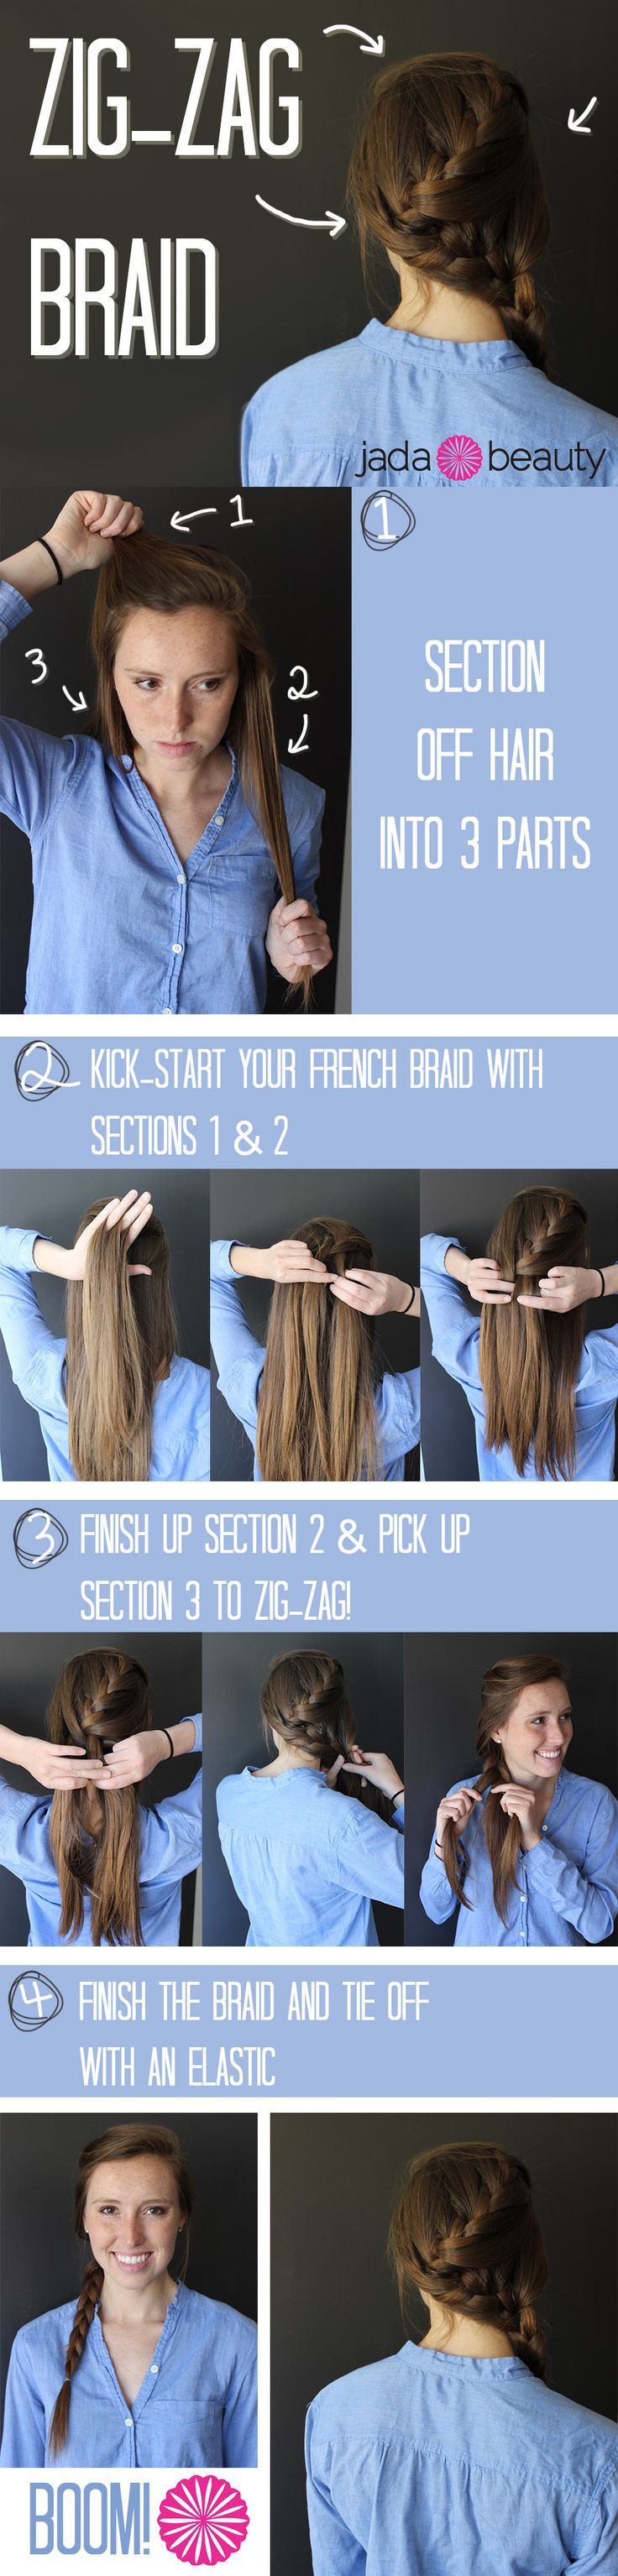 Zig-Zag Braid Tutorial. I need to learn how to do this!